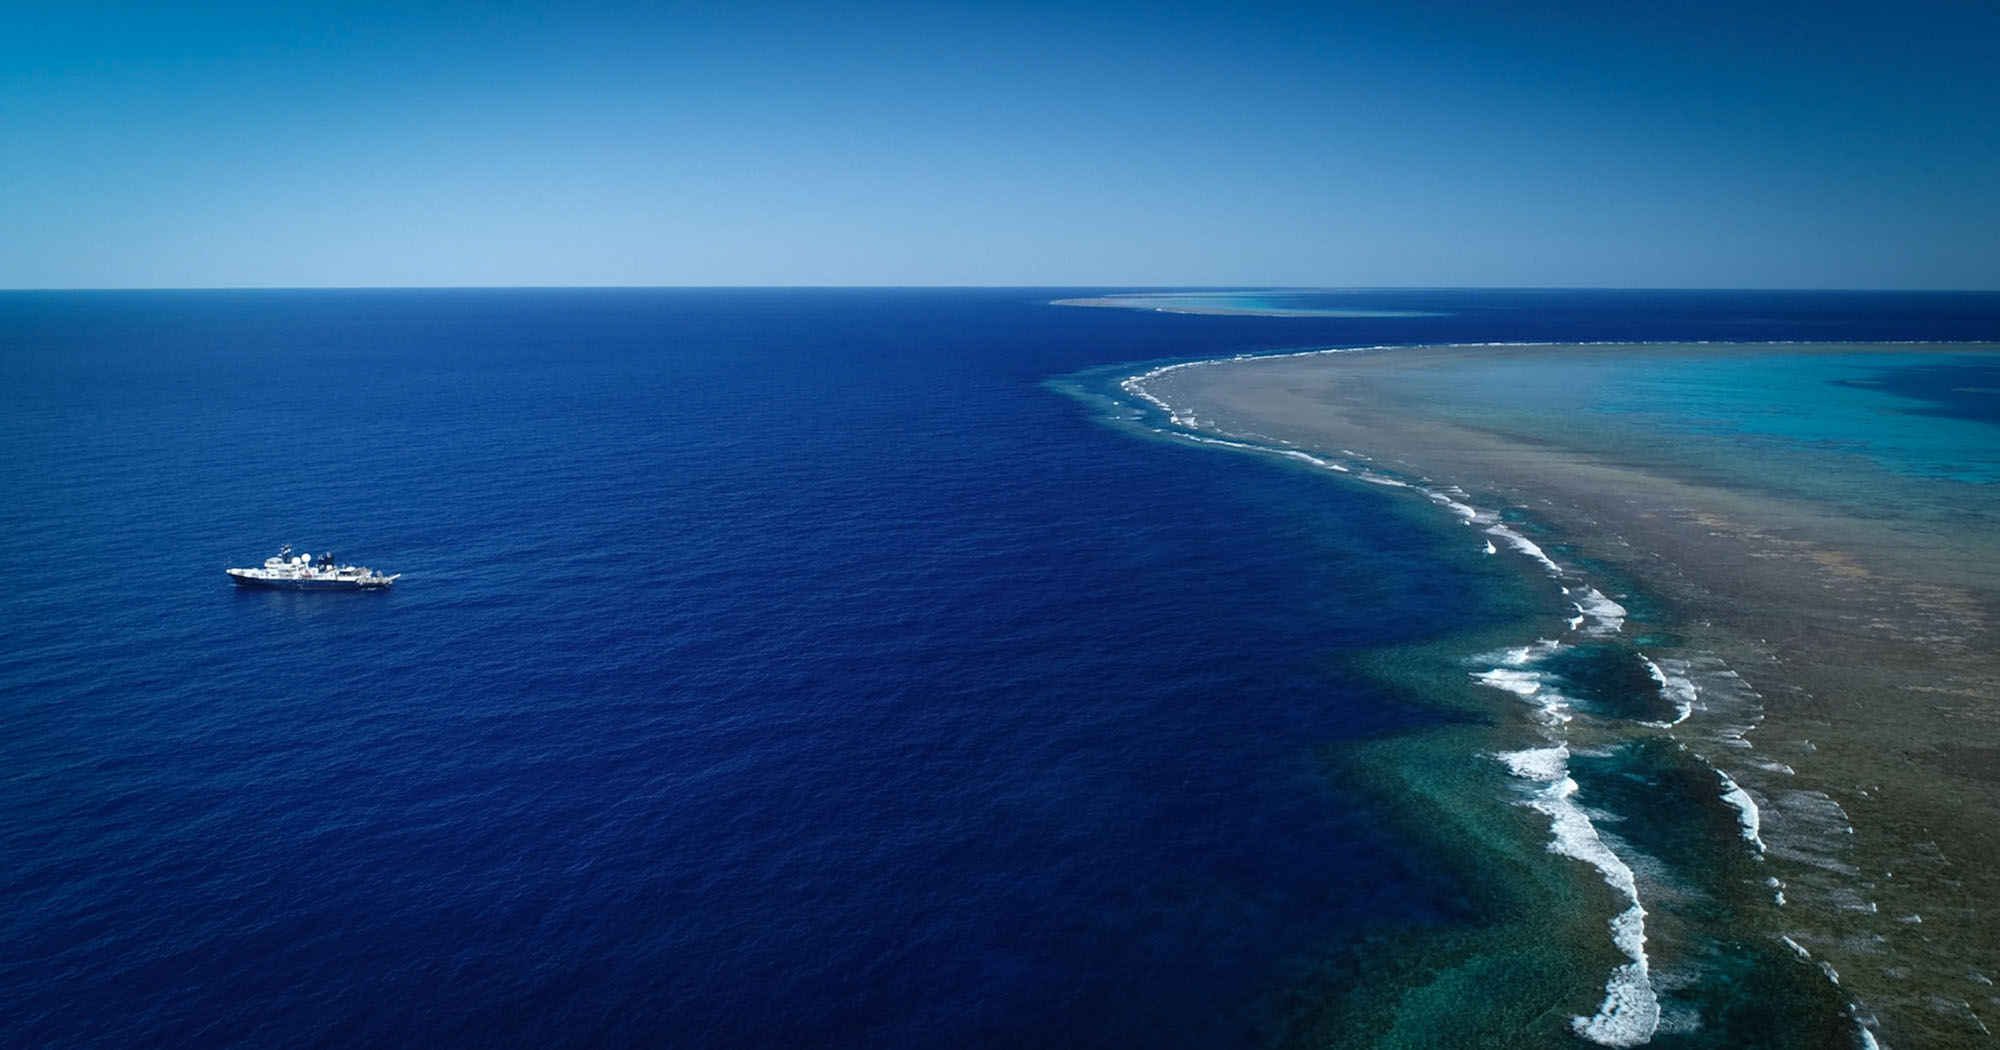 Coral reef the size of the Empire State Building found off Australia's coast - Fox News